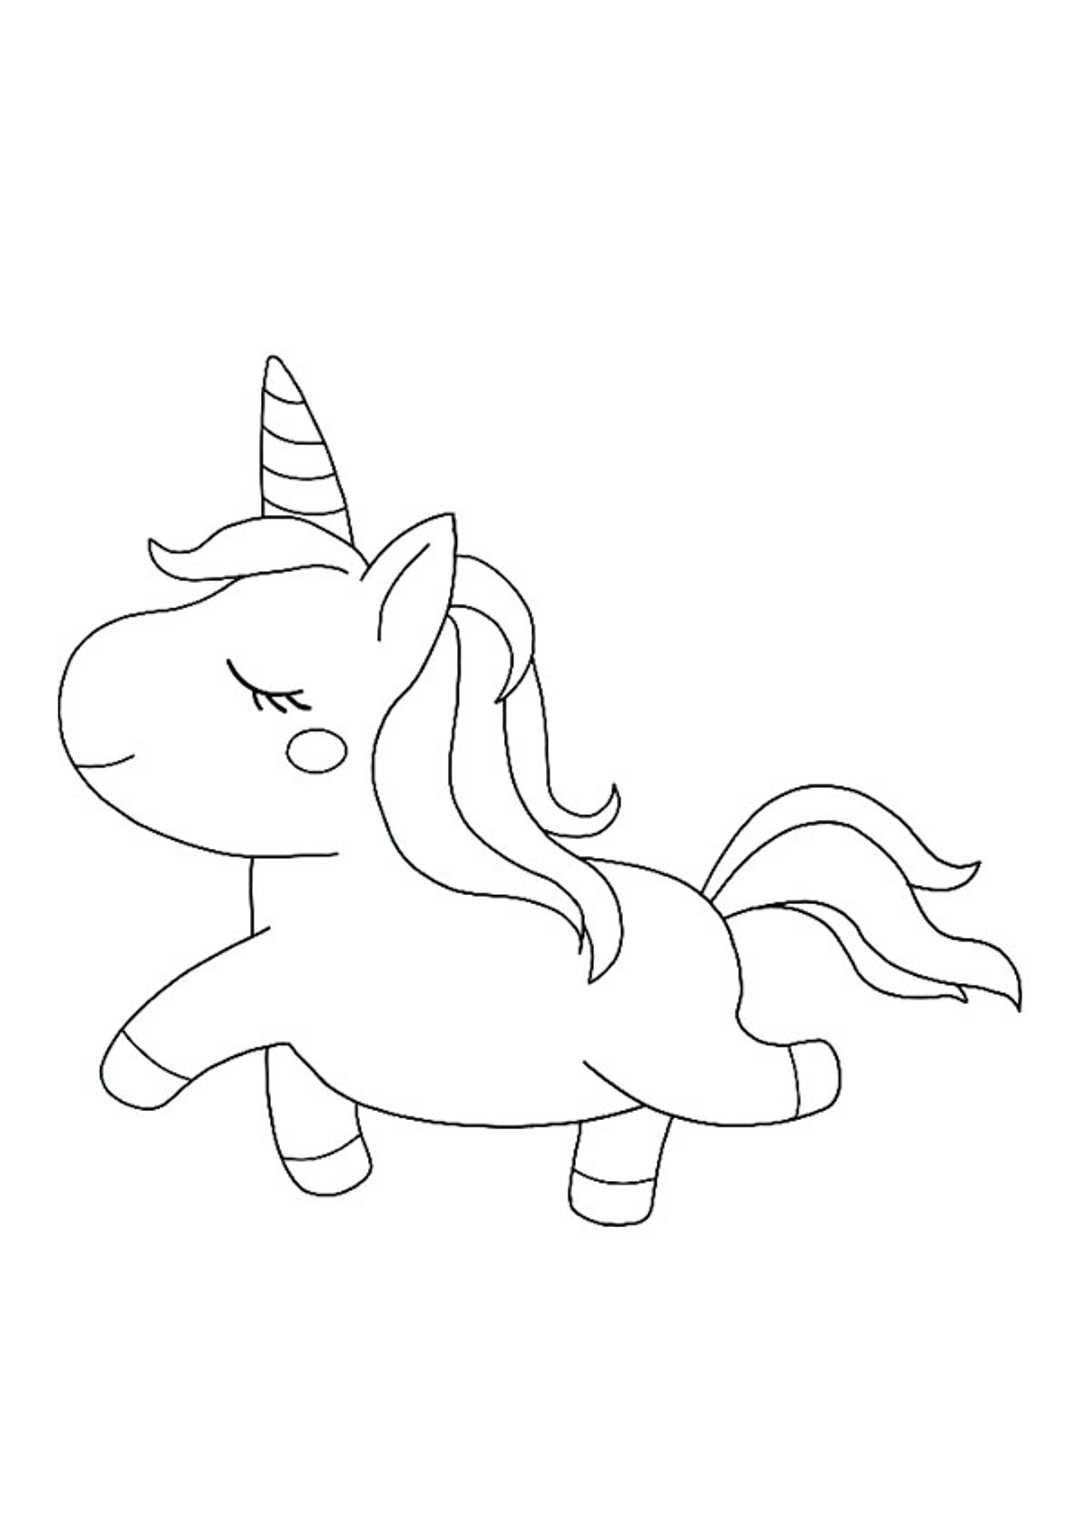 Cute Unicorn Coloring Pages Unicorn Coloring Pages Free Printable Coloring Sheets Emoji Coloring Pages